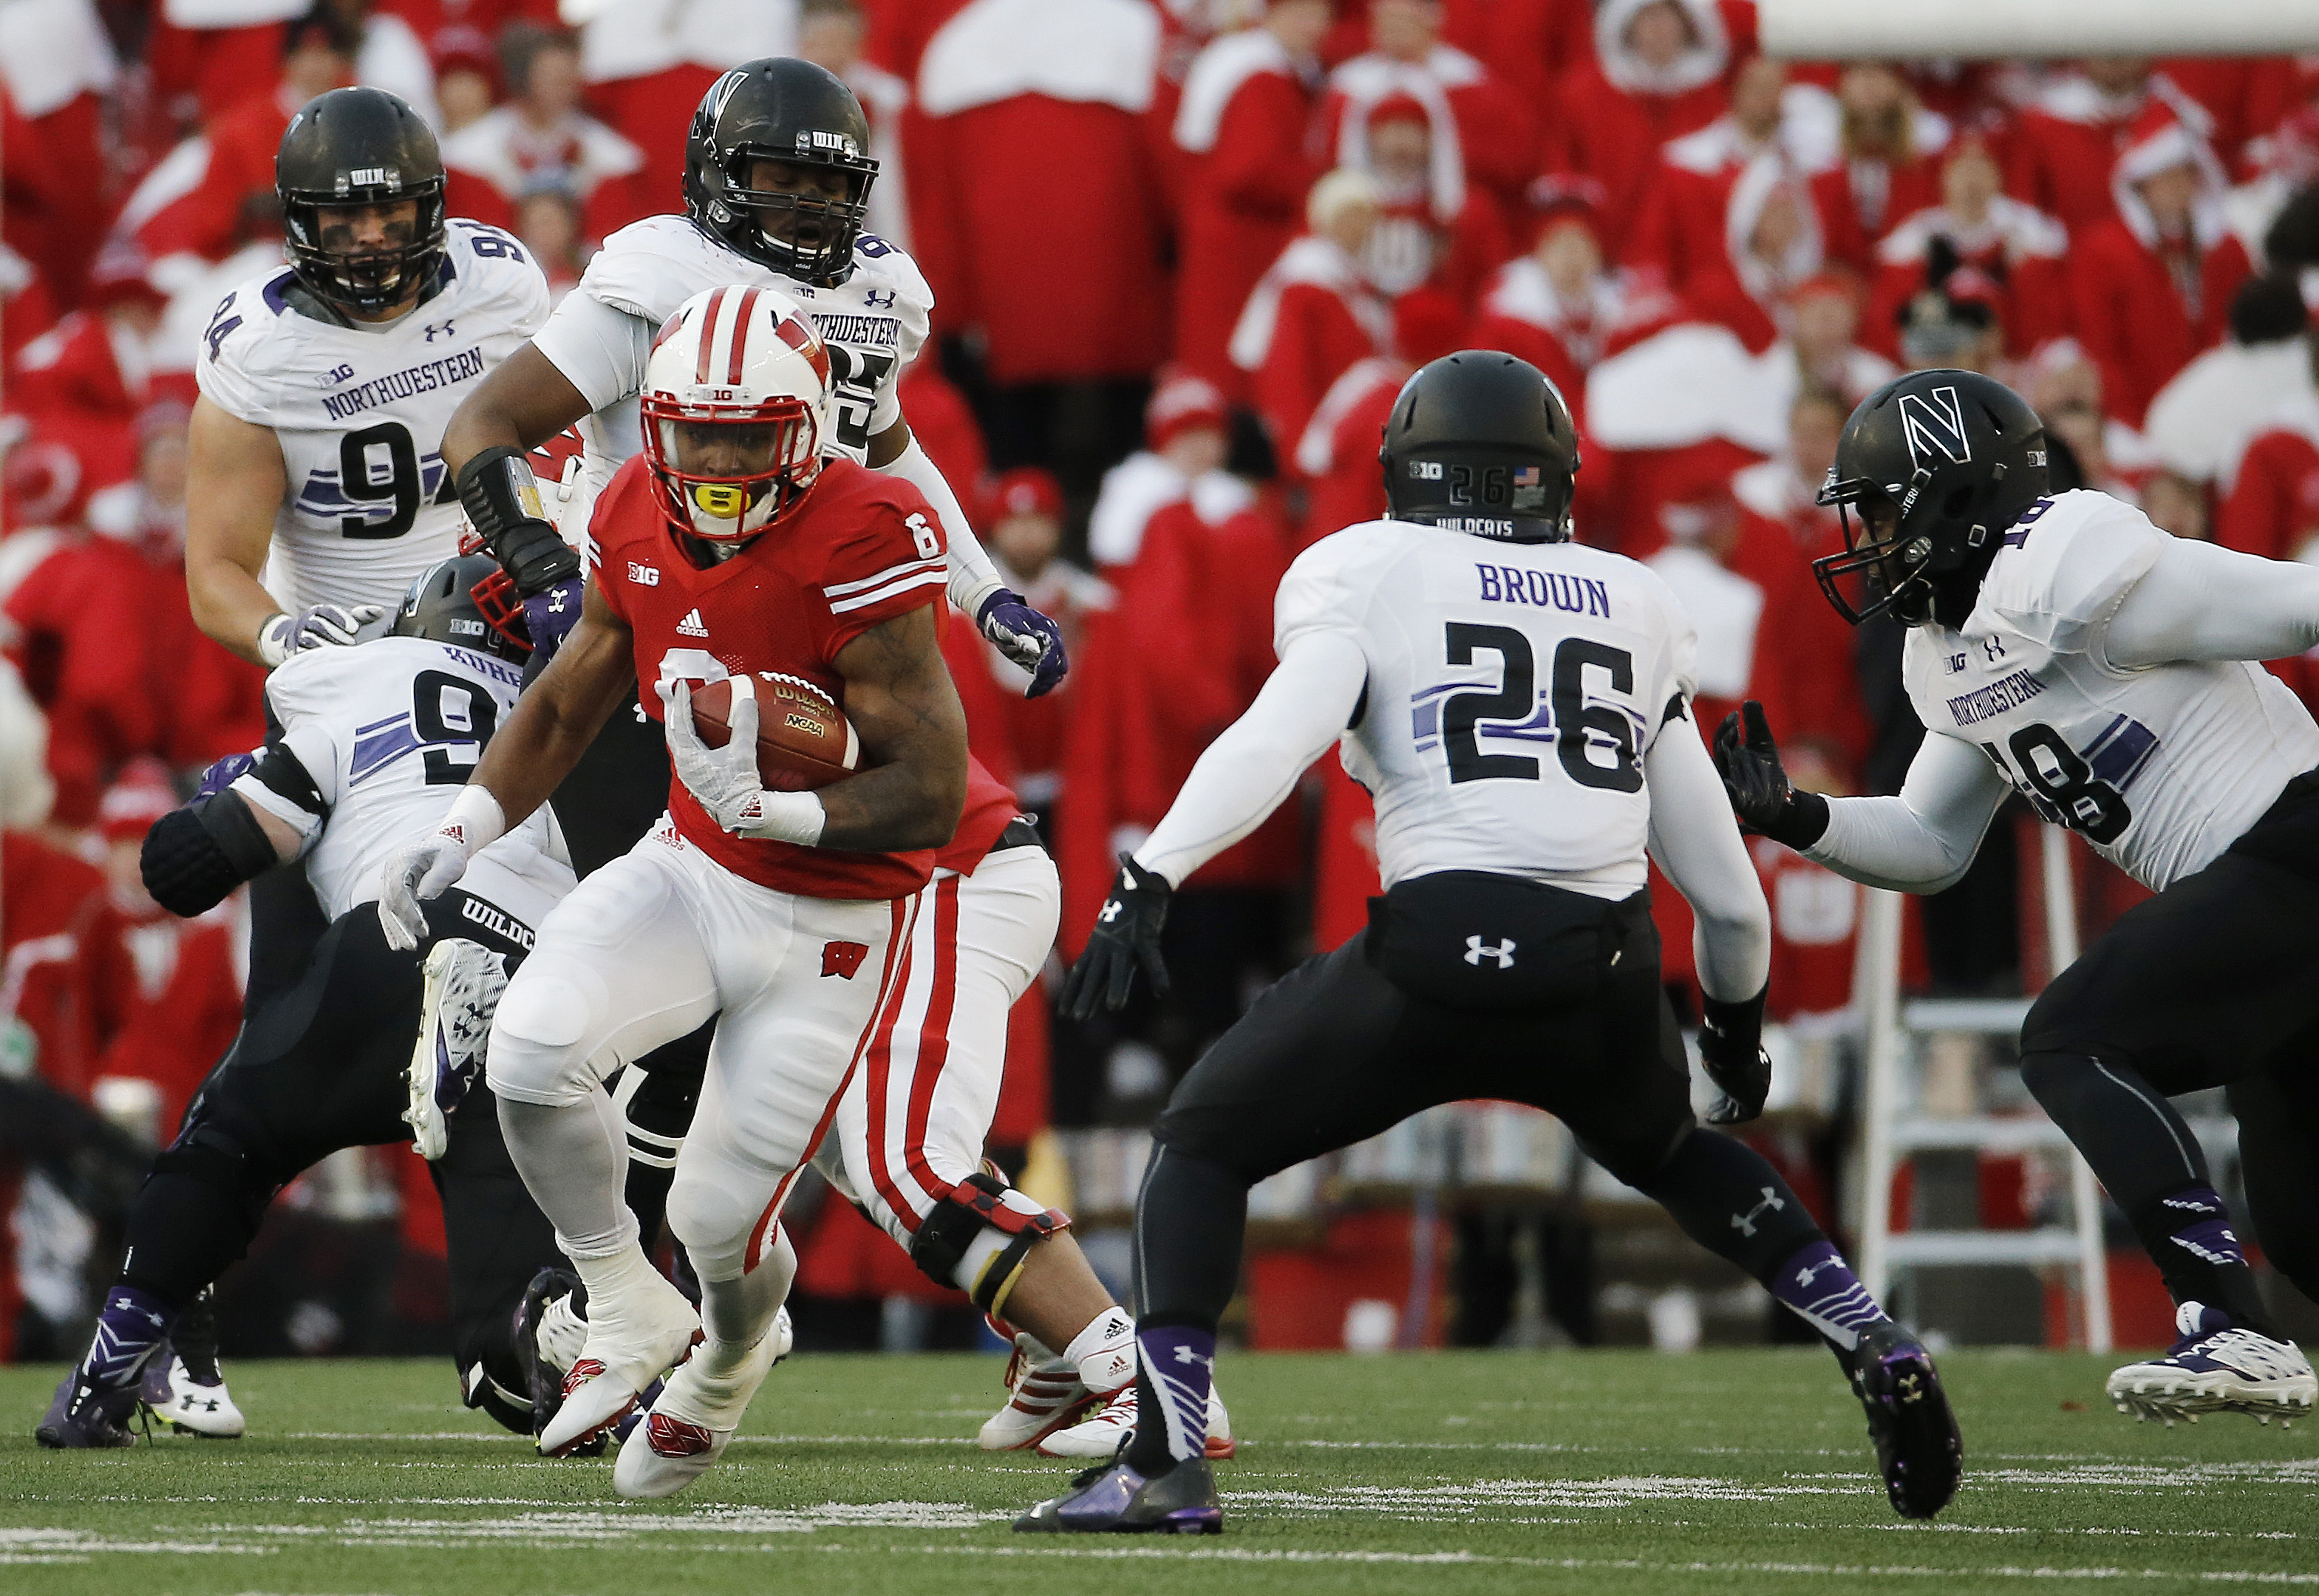 Wisconsin's Corey Clement rubs during the first half of an NCAA college football game against Northwestern Saturday, Nov. 21, 2015, in Madison, Wis. (AP Photo/Morry Gash)